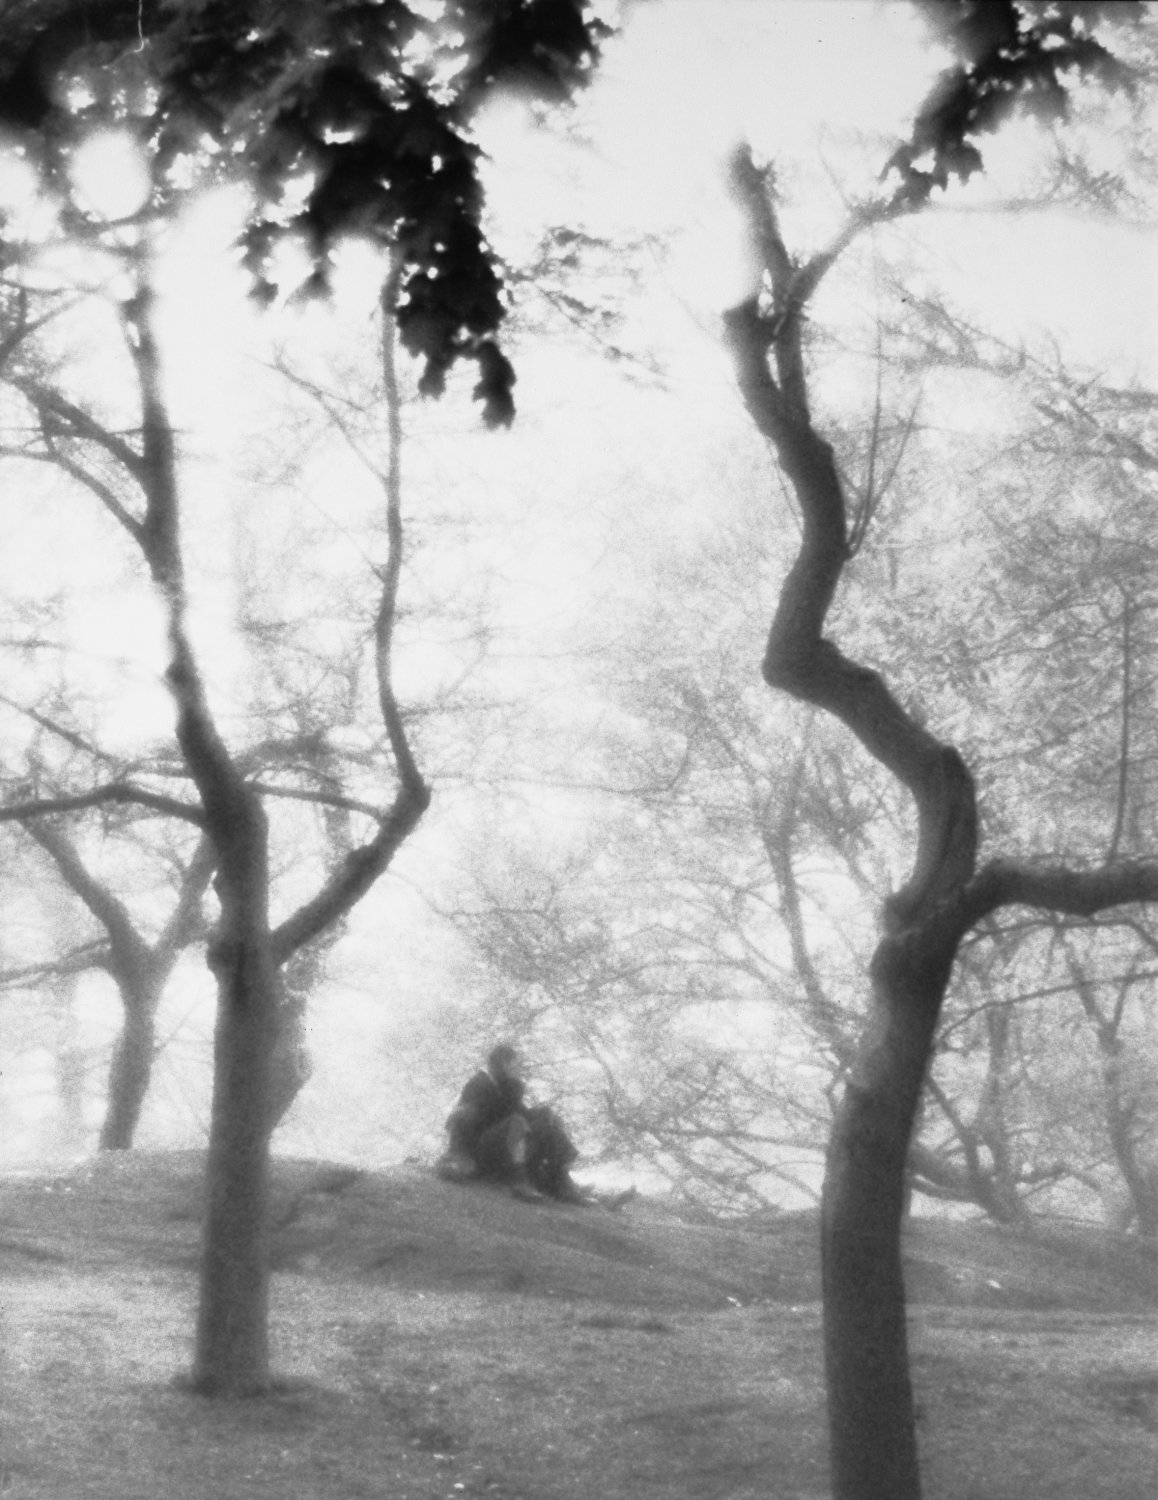 - A fantasy in Central Park. - Photojournalism - Life Magazine - Black and white photography - Canon rangefinder and SLR cameras - - art  - photography - by Tony Karp